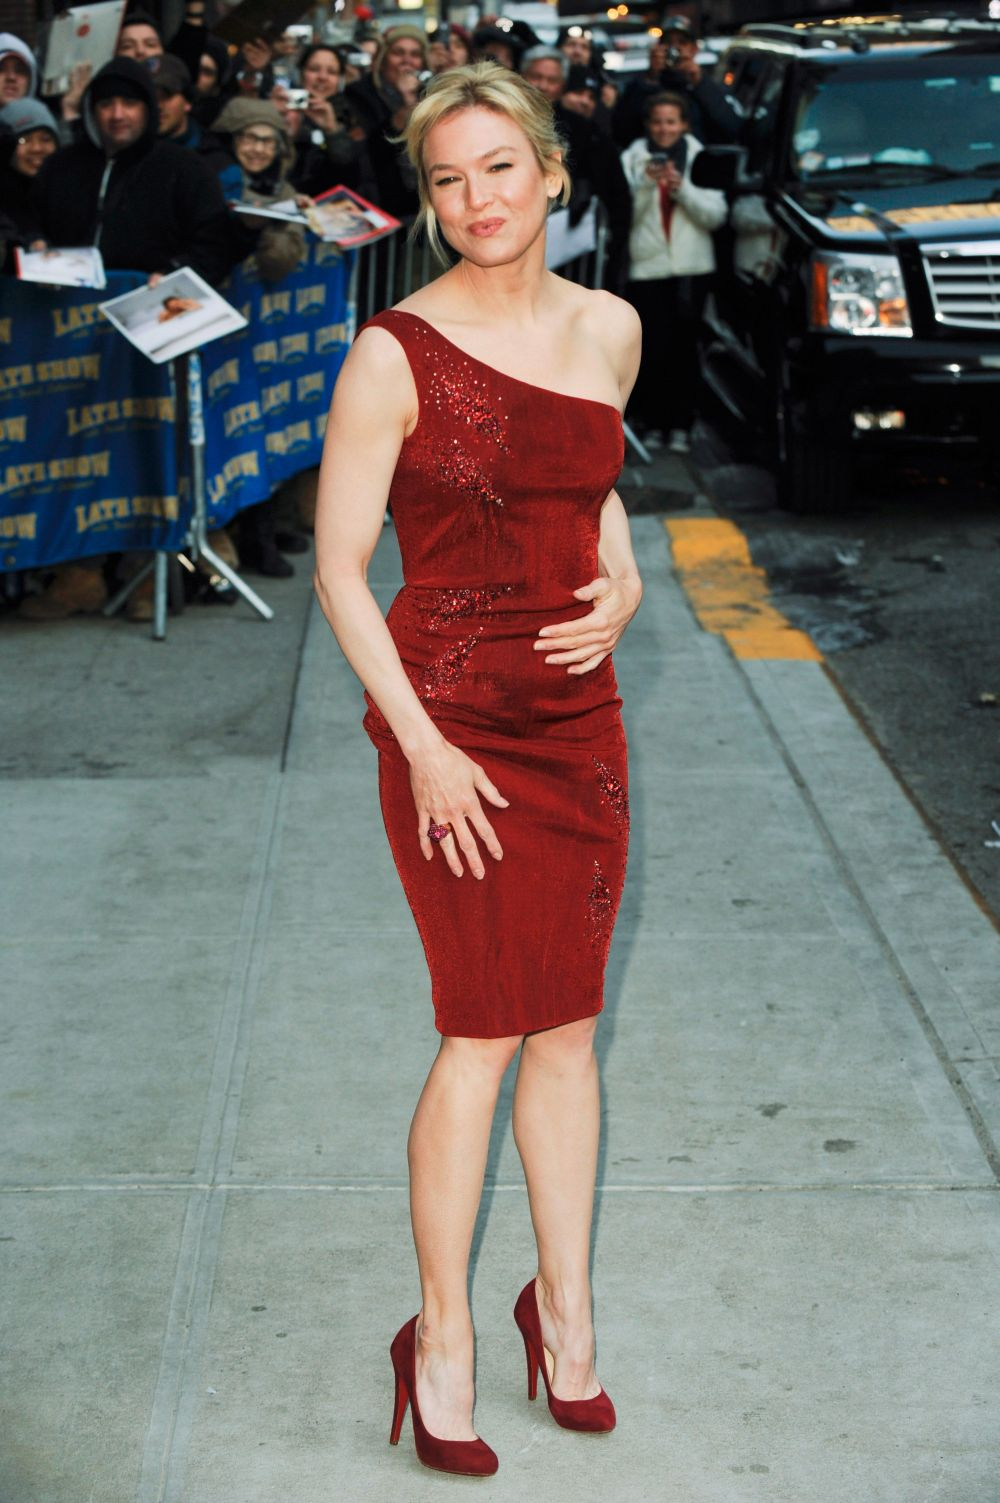 And Im Glad She Enjoys Showing Off Her Work By Wearing High Heels And Sexy Dresses Renee_zellweger Renee Zellweger